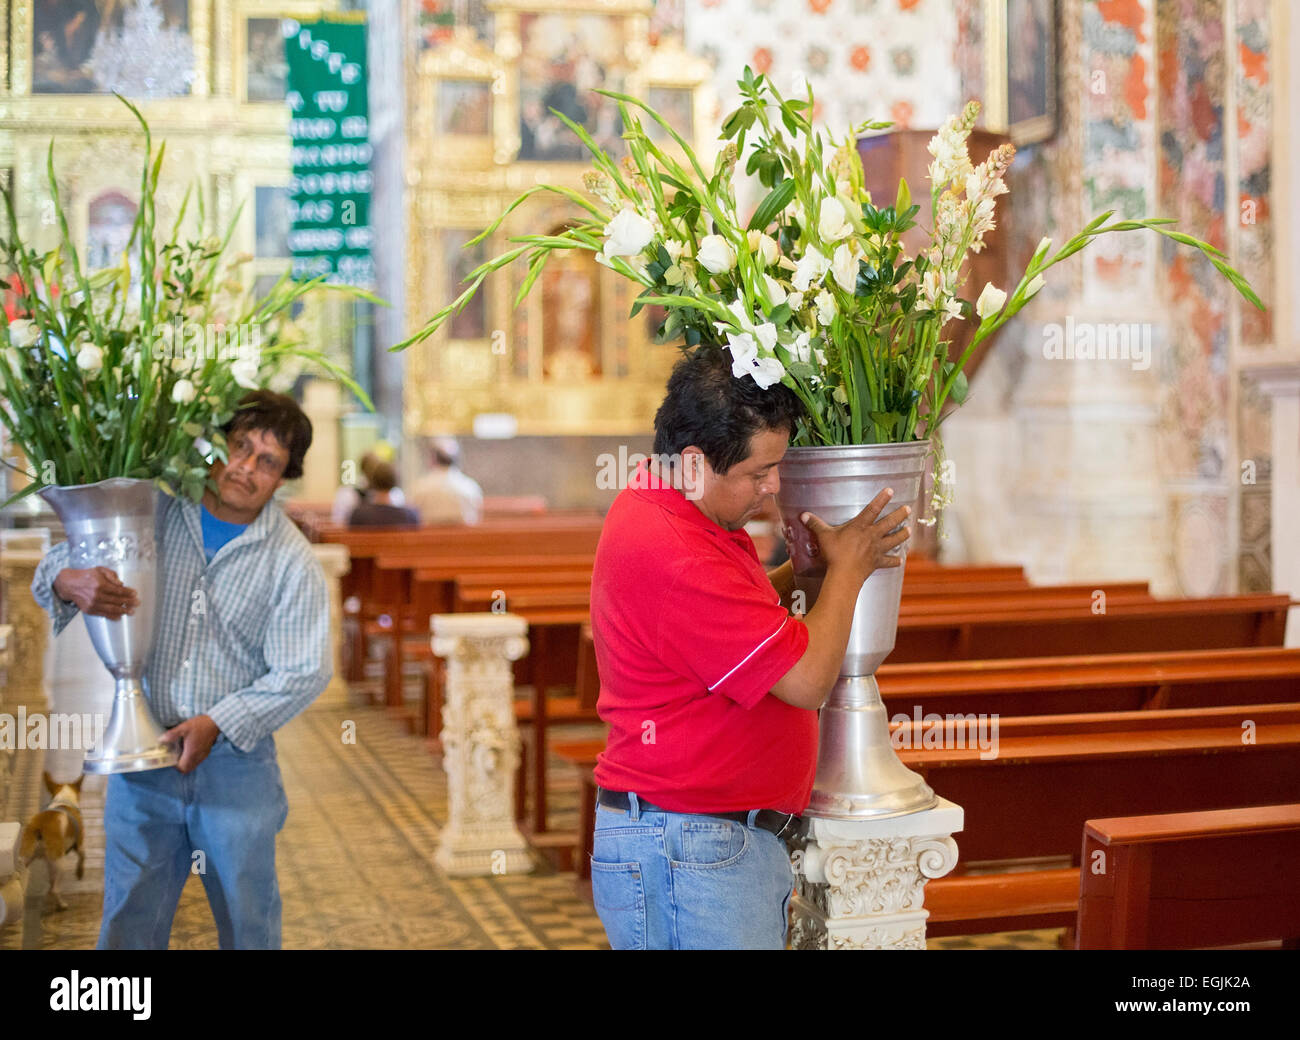 Tlacochahuaya Oaxaca Mexico Workers Place Flowers For A Funeral